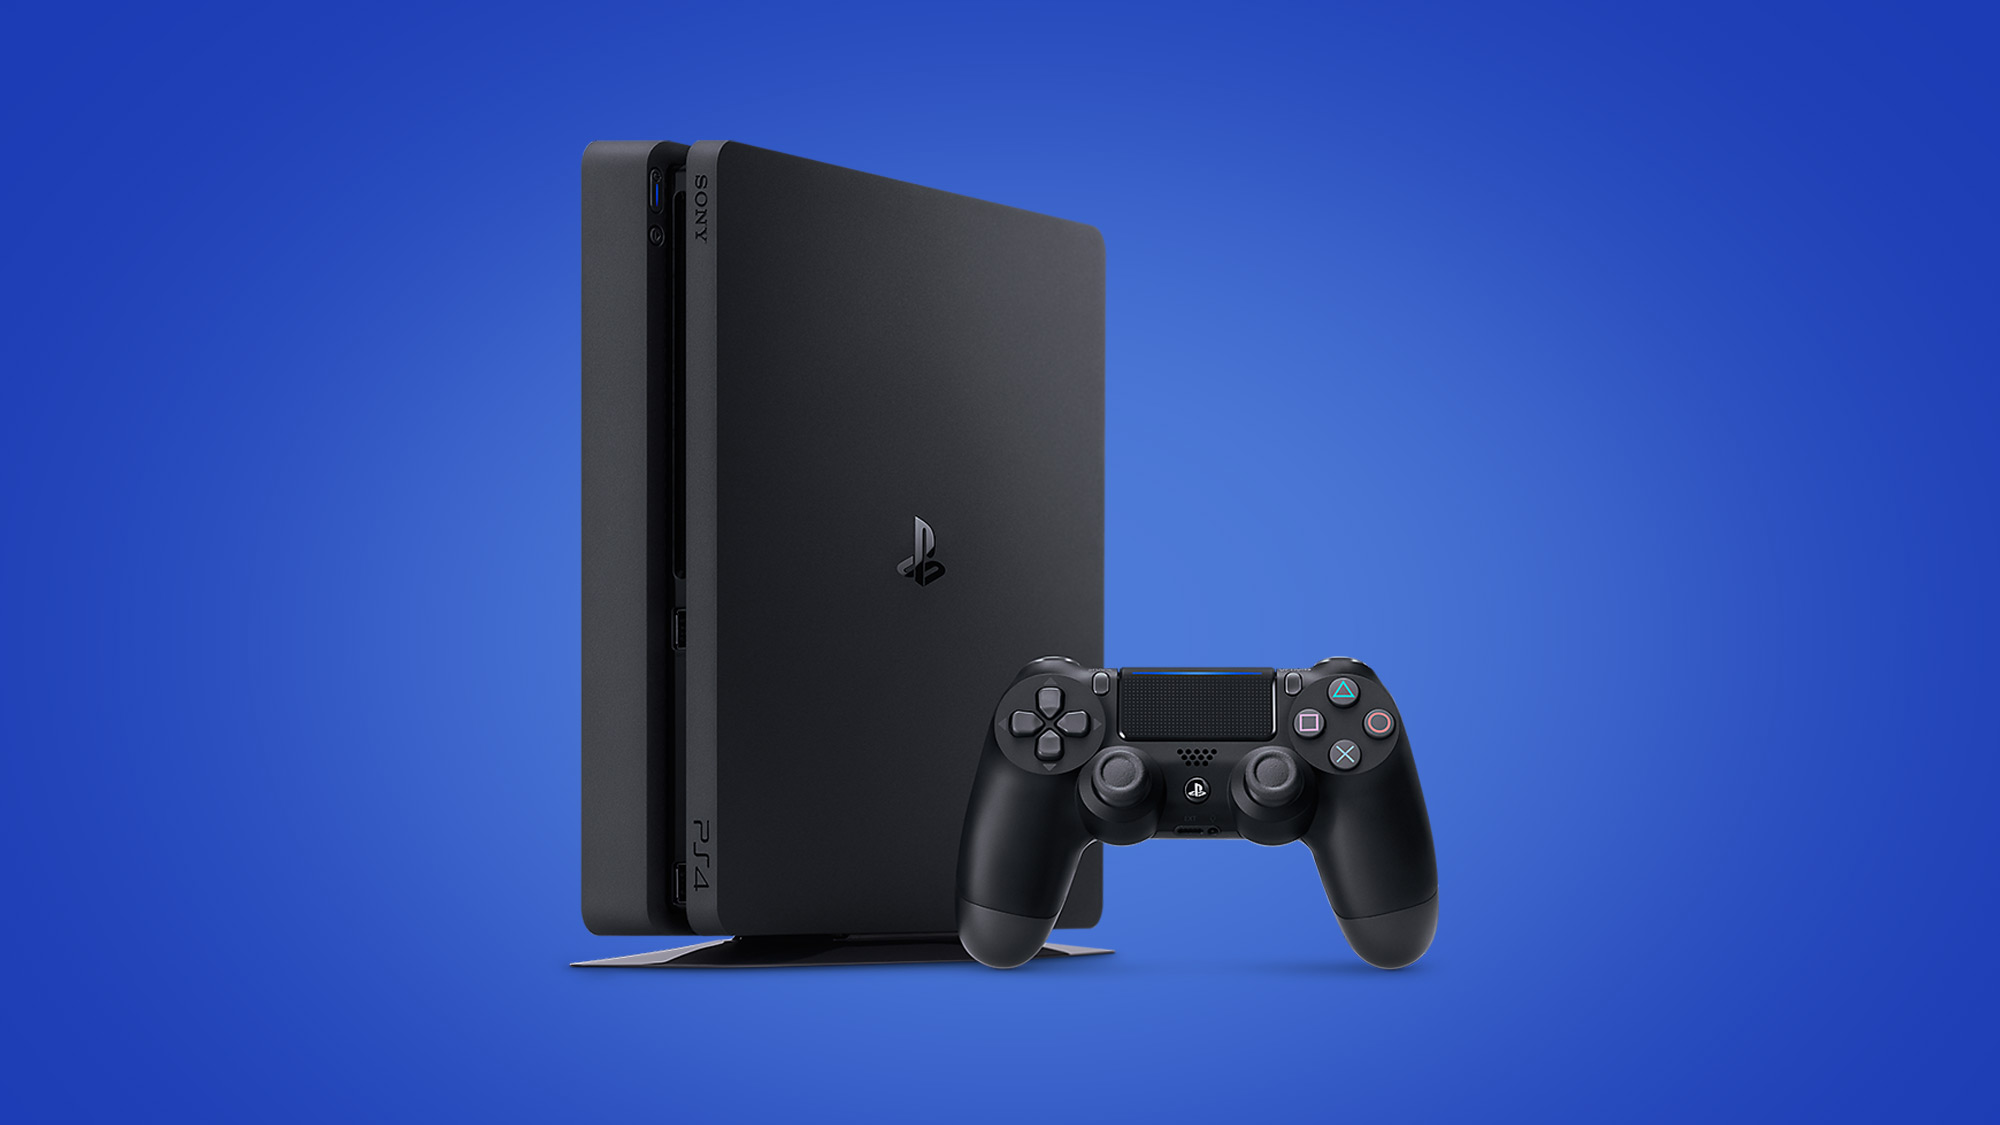 An image of the PlayStation 4 console.